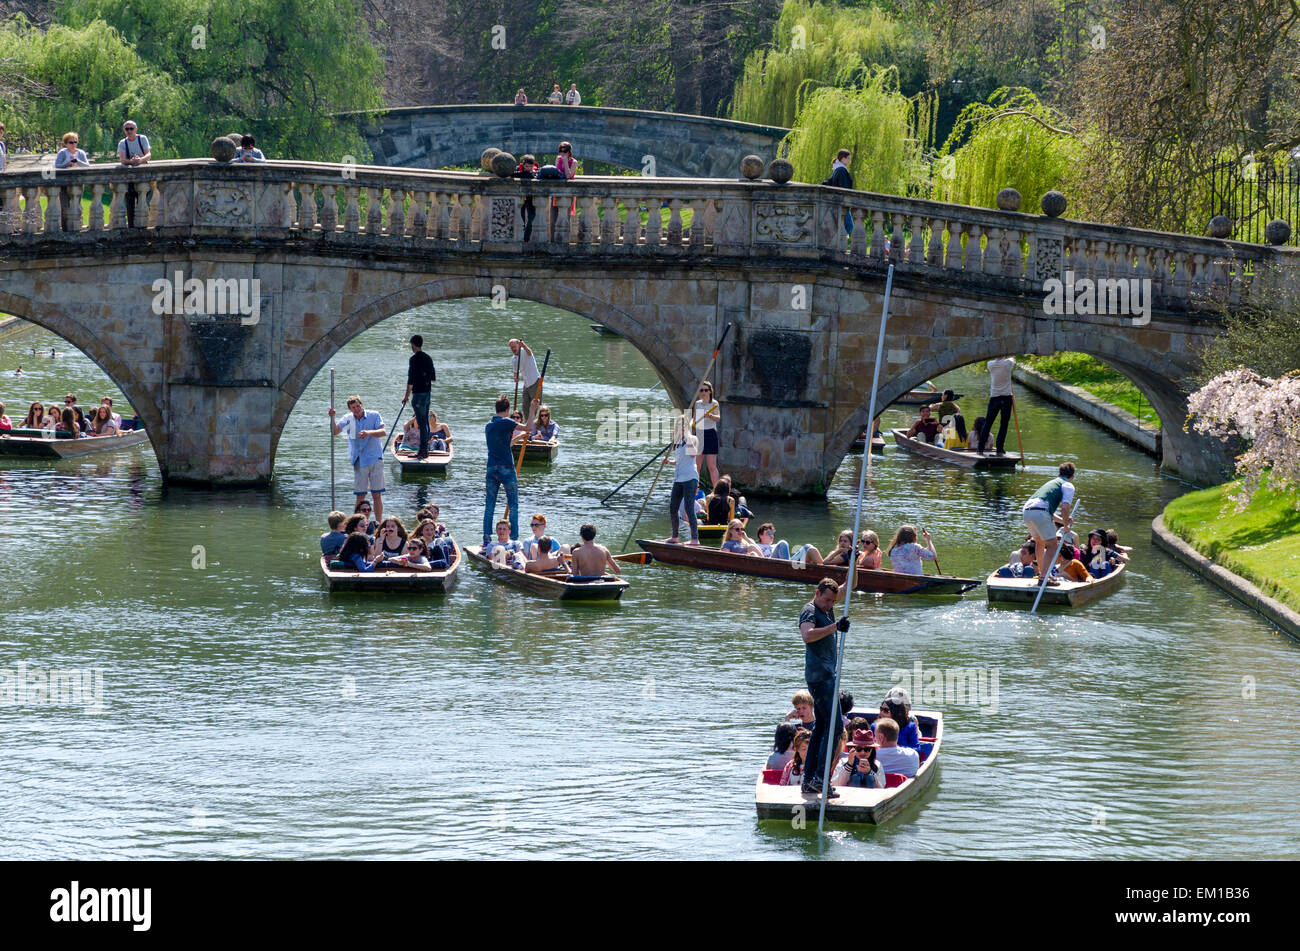 Cambridge, UK. 15th April 2015. Holidaymakers and students enjoy punting on the River Cam in Cambridge as temperatures - Stock Image